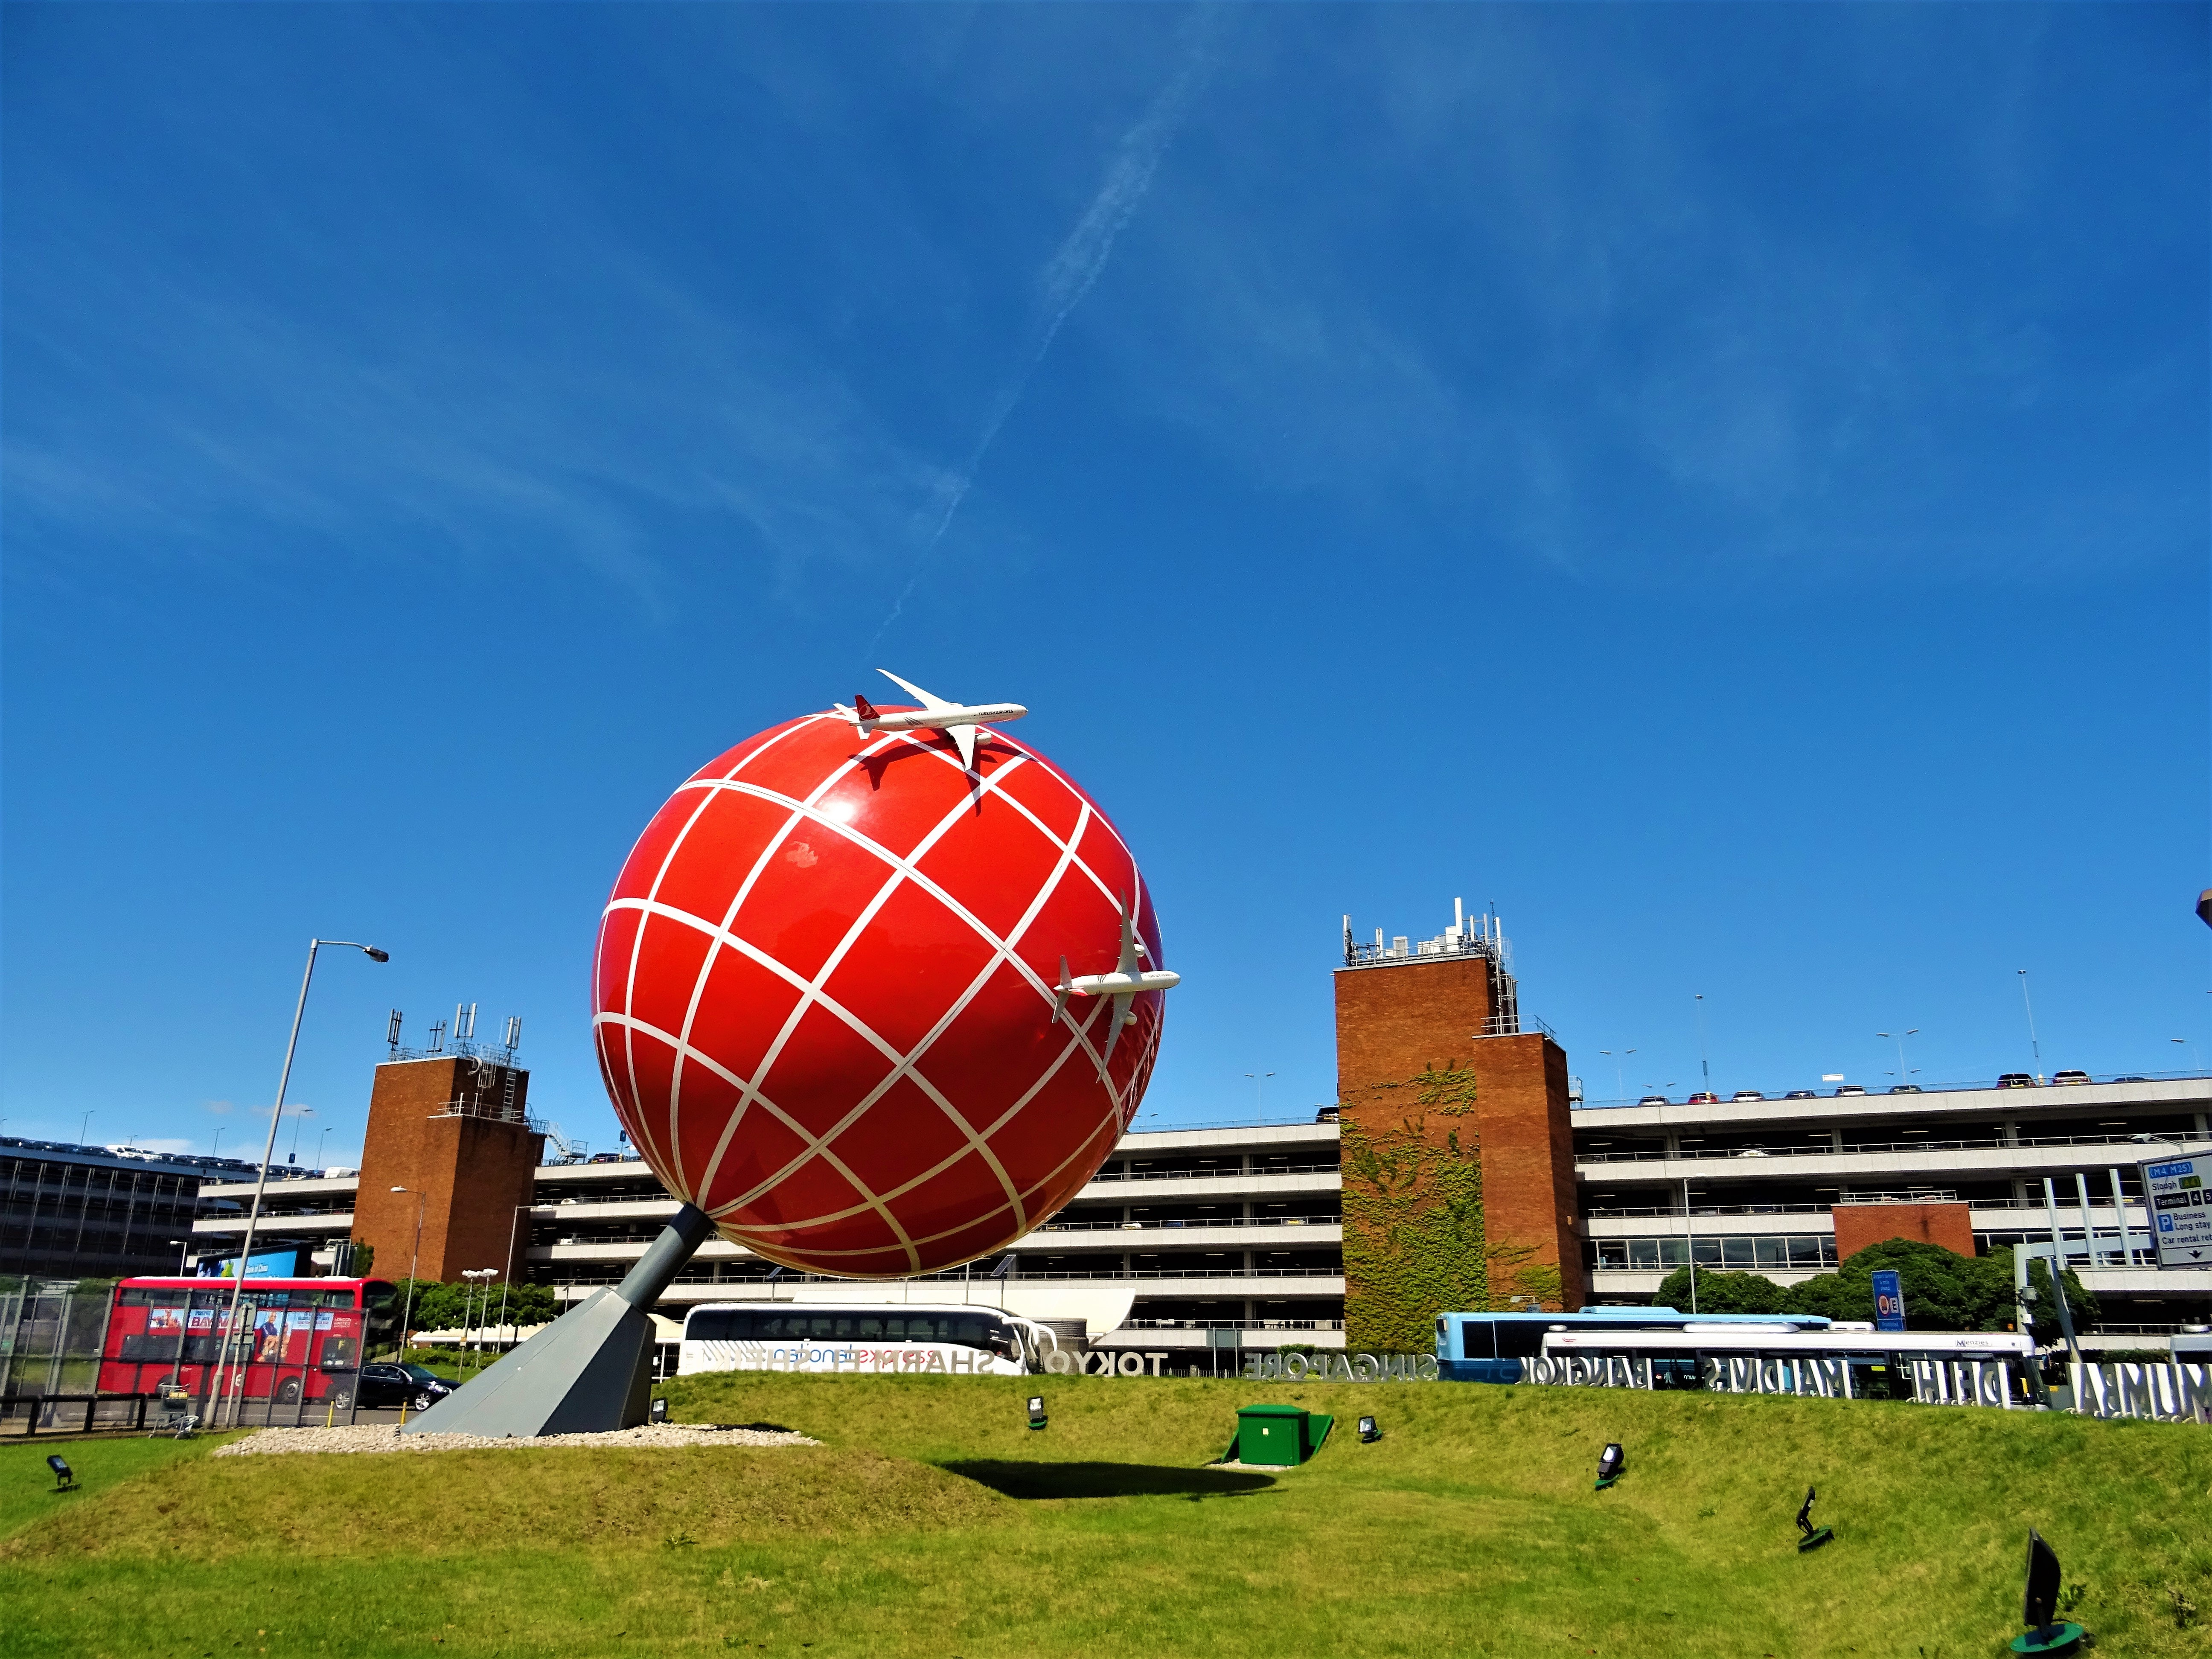 Red and white globe statue near brown and white concrete building photo